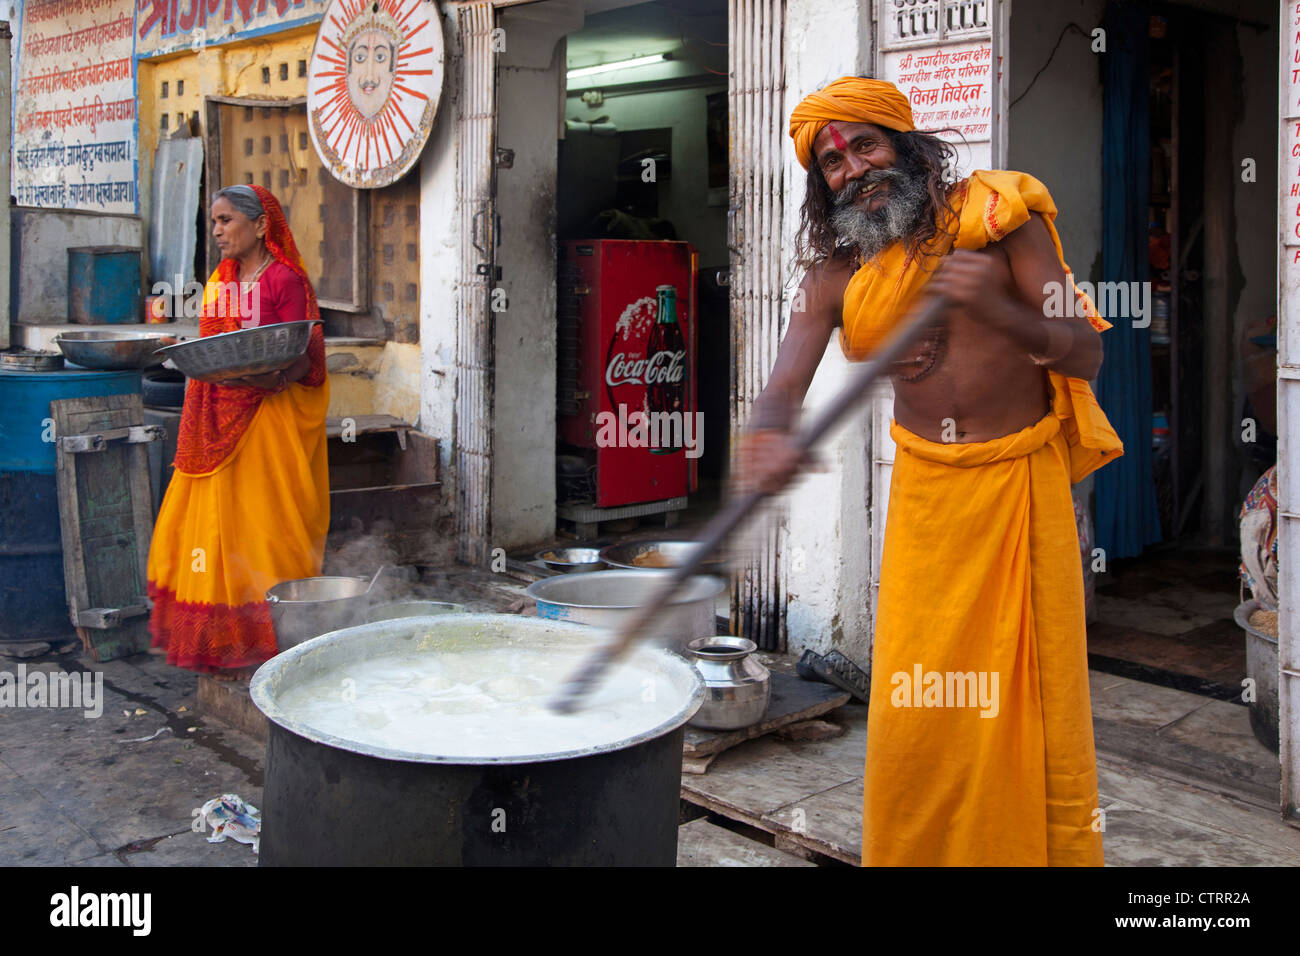 Hindu man wearing red bindi on forehead stirring food in huge pot for the needy in Udaipur, Rajasthan, India - Stock Image